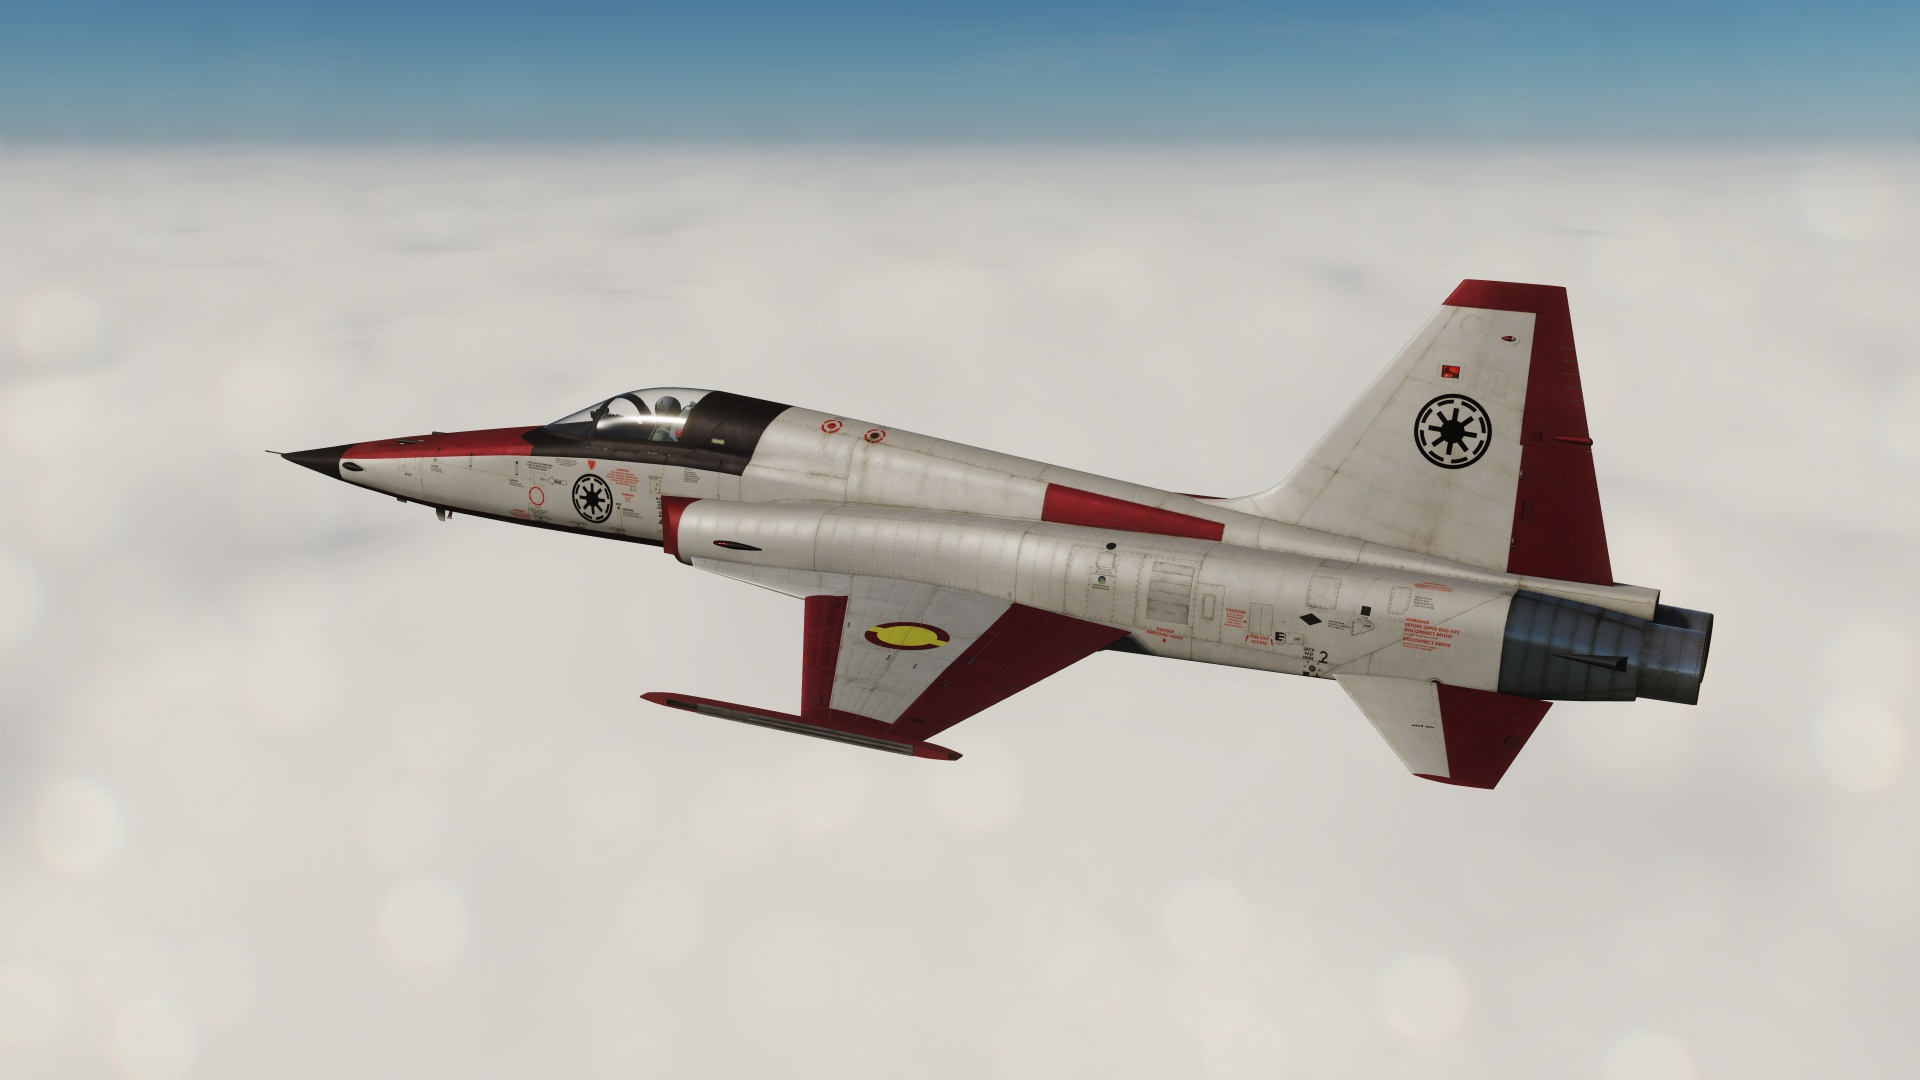 F-5E Tiger Star Wars Z-95 Headhunter